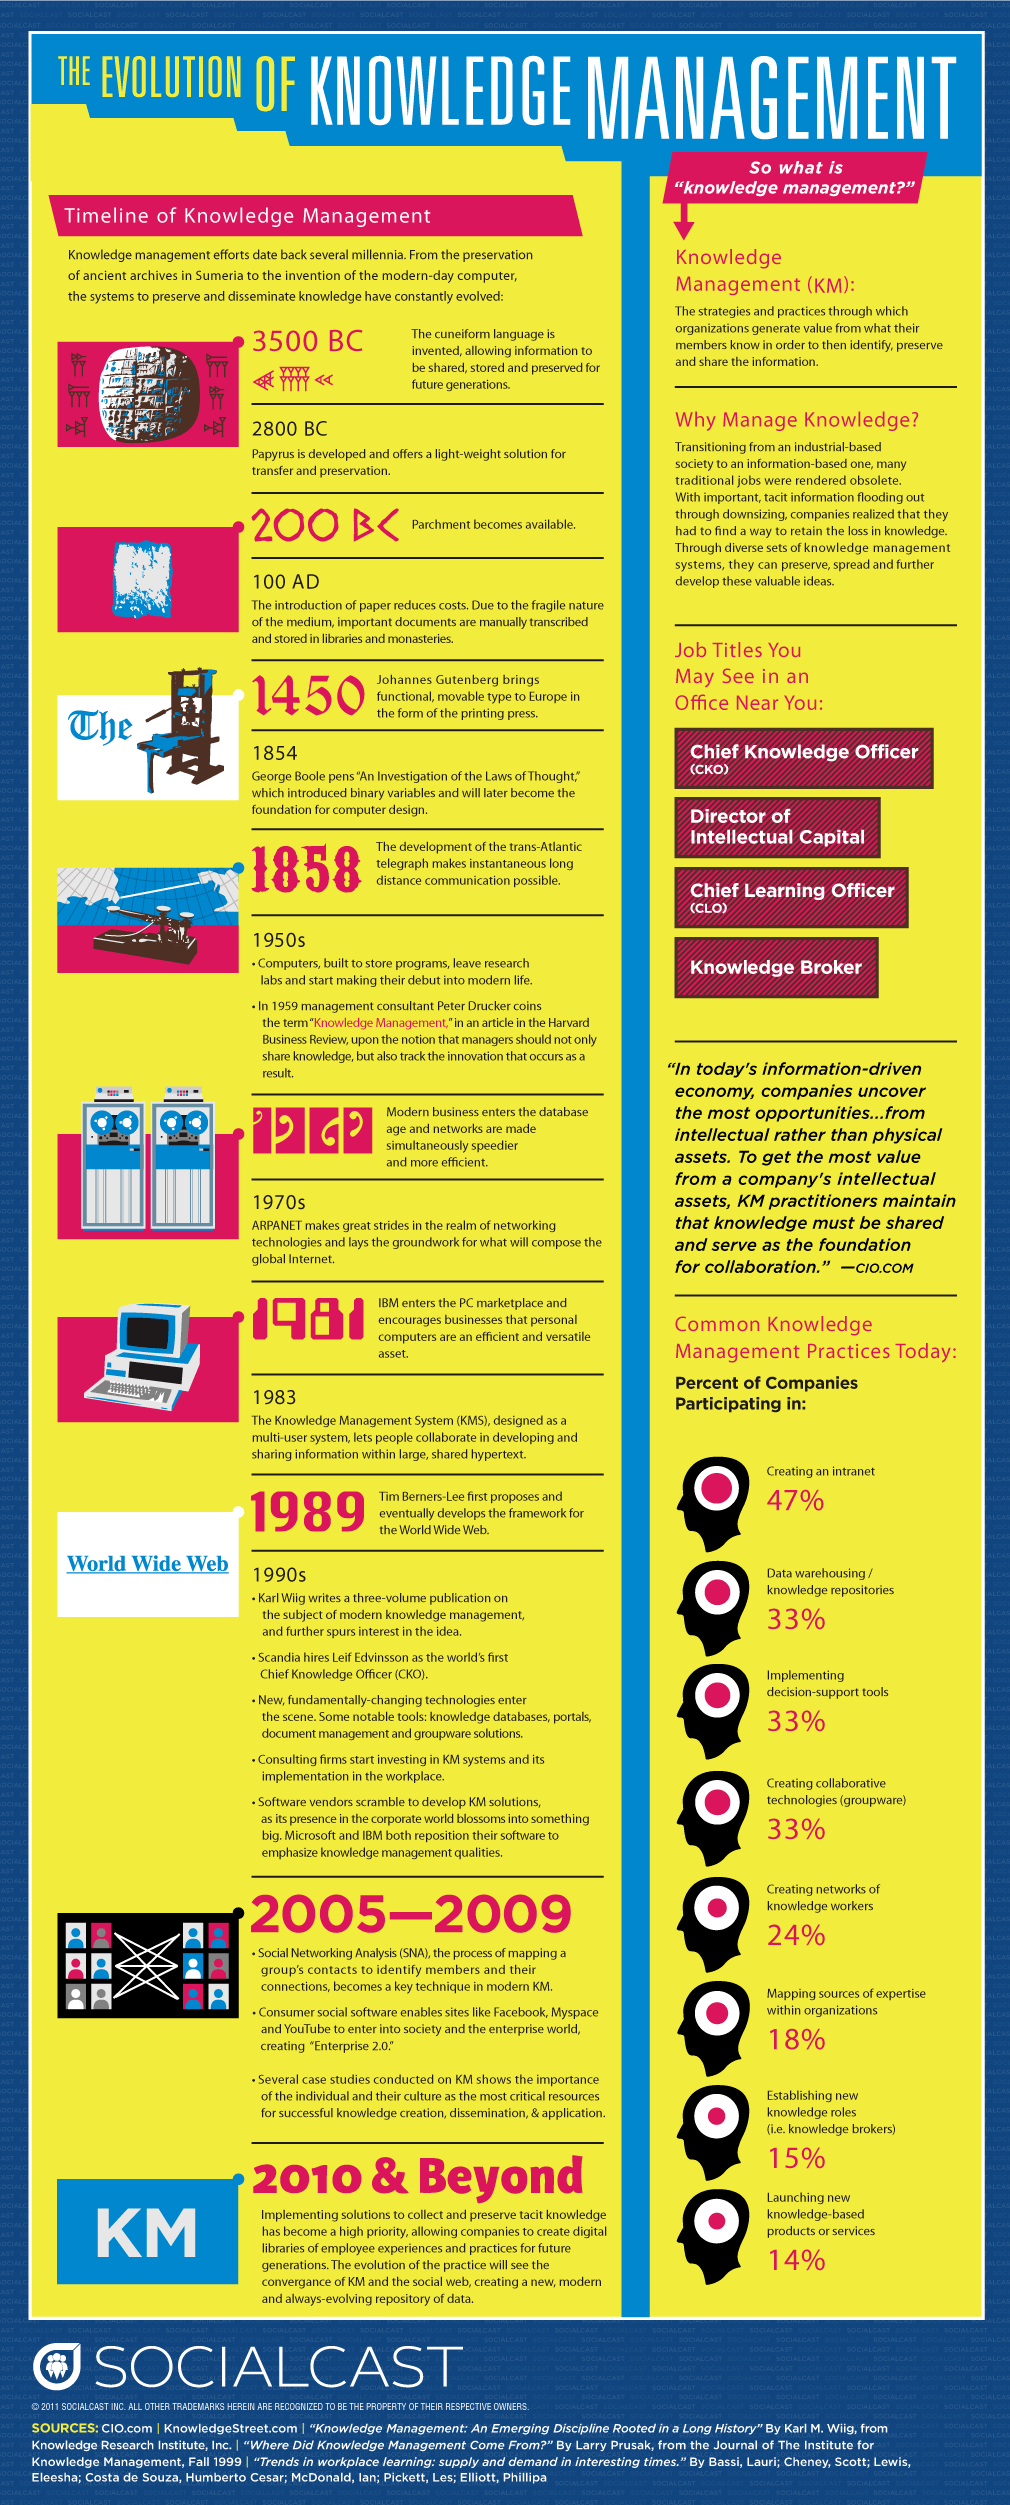 The Evolution of Knowledge Management Infographic